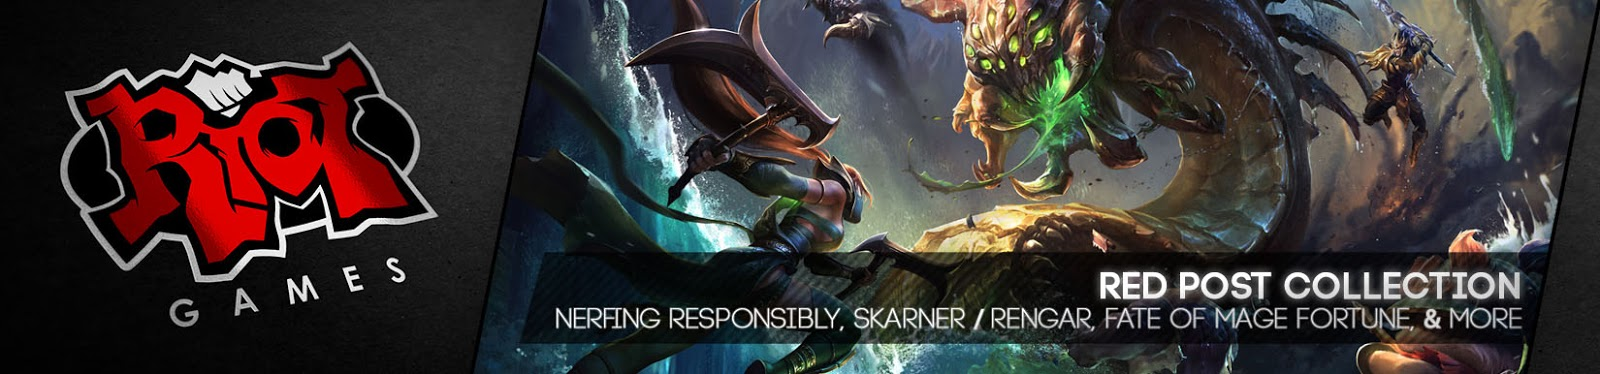 Skarner Quotes: Surrender At 20: Red Post Collection: Morello On Nerfing